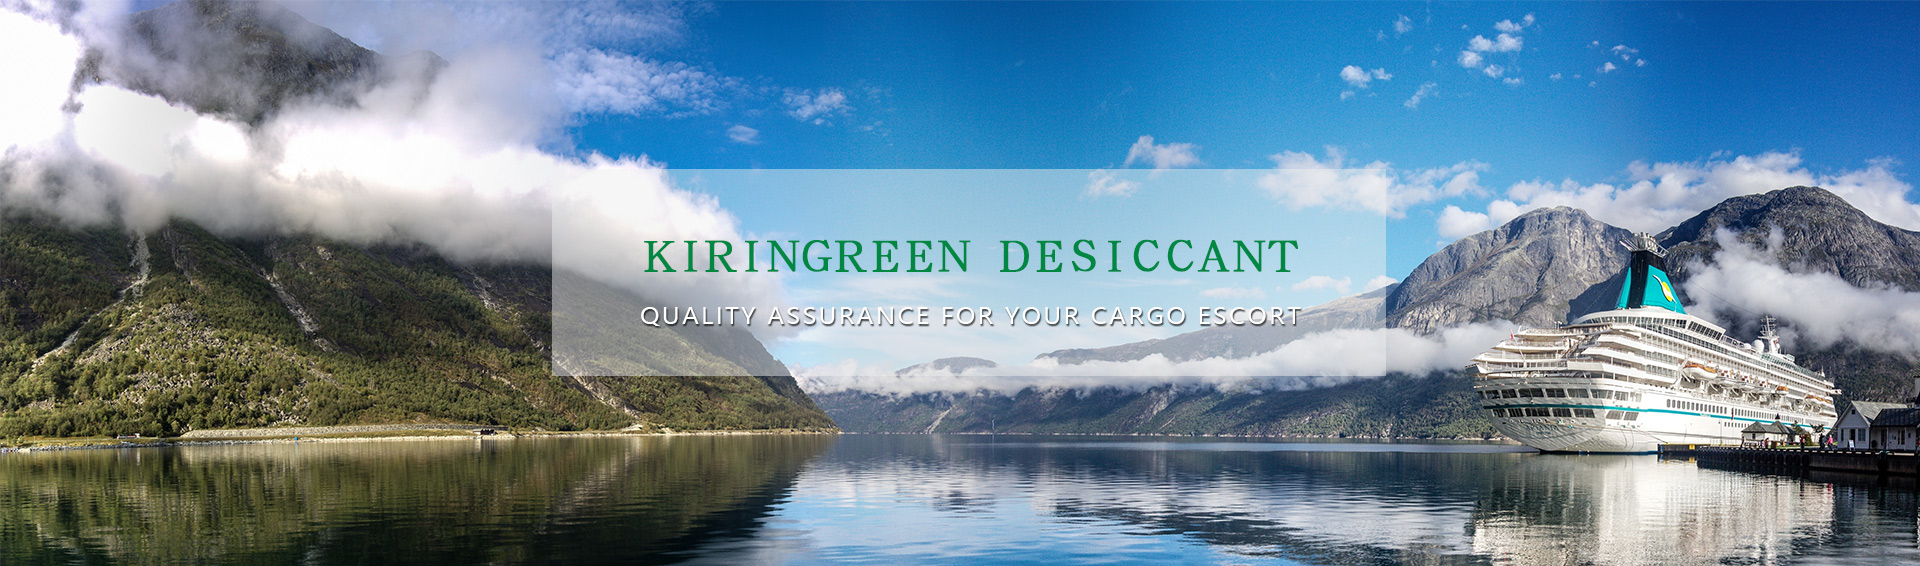 Container desiccant supplier